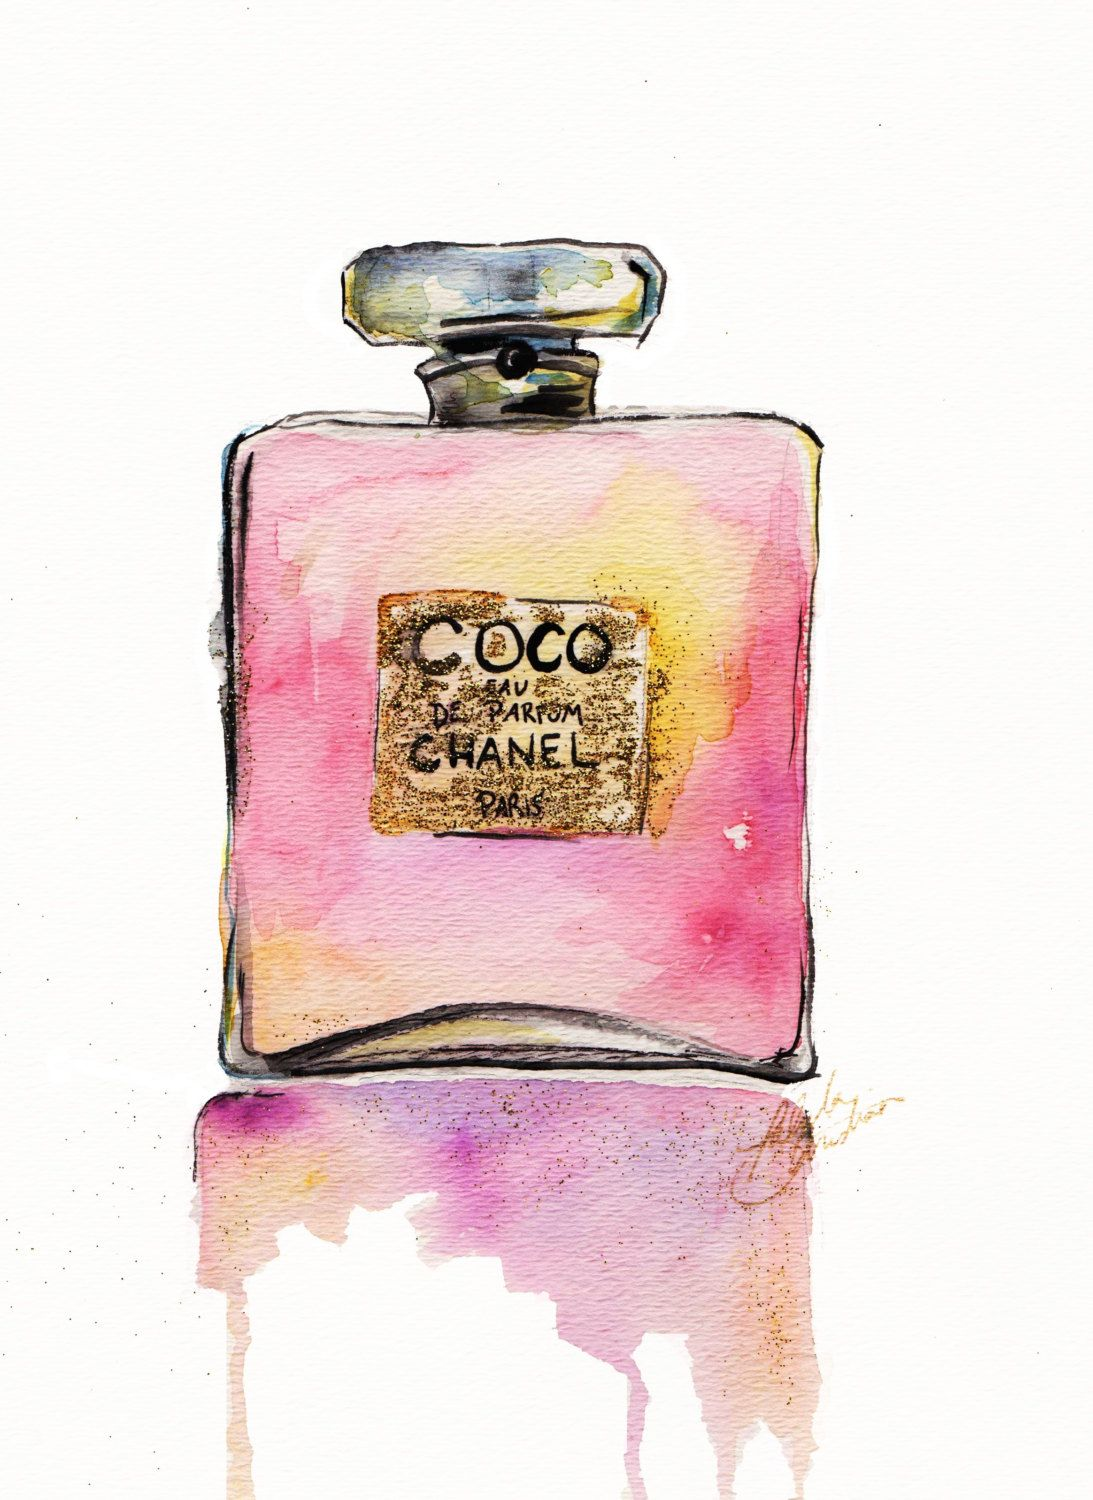 Chanel Perfume Bottle Print | Coupon codes, Perfume and Bottle